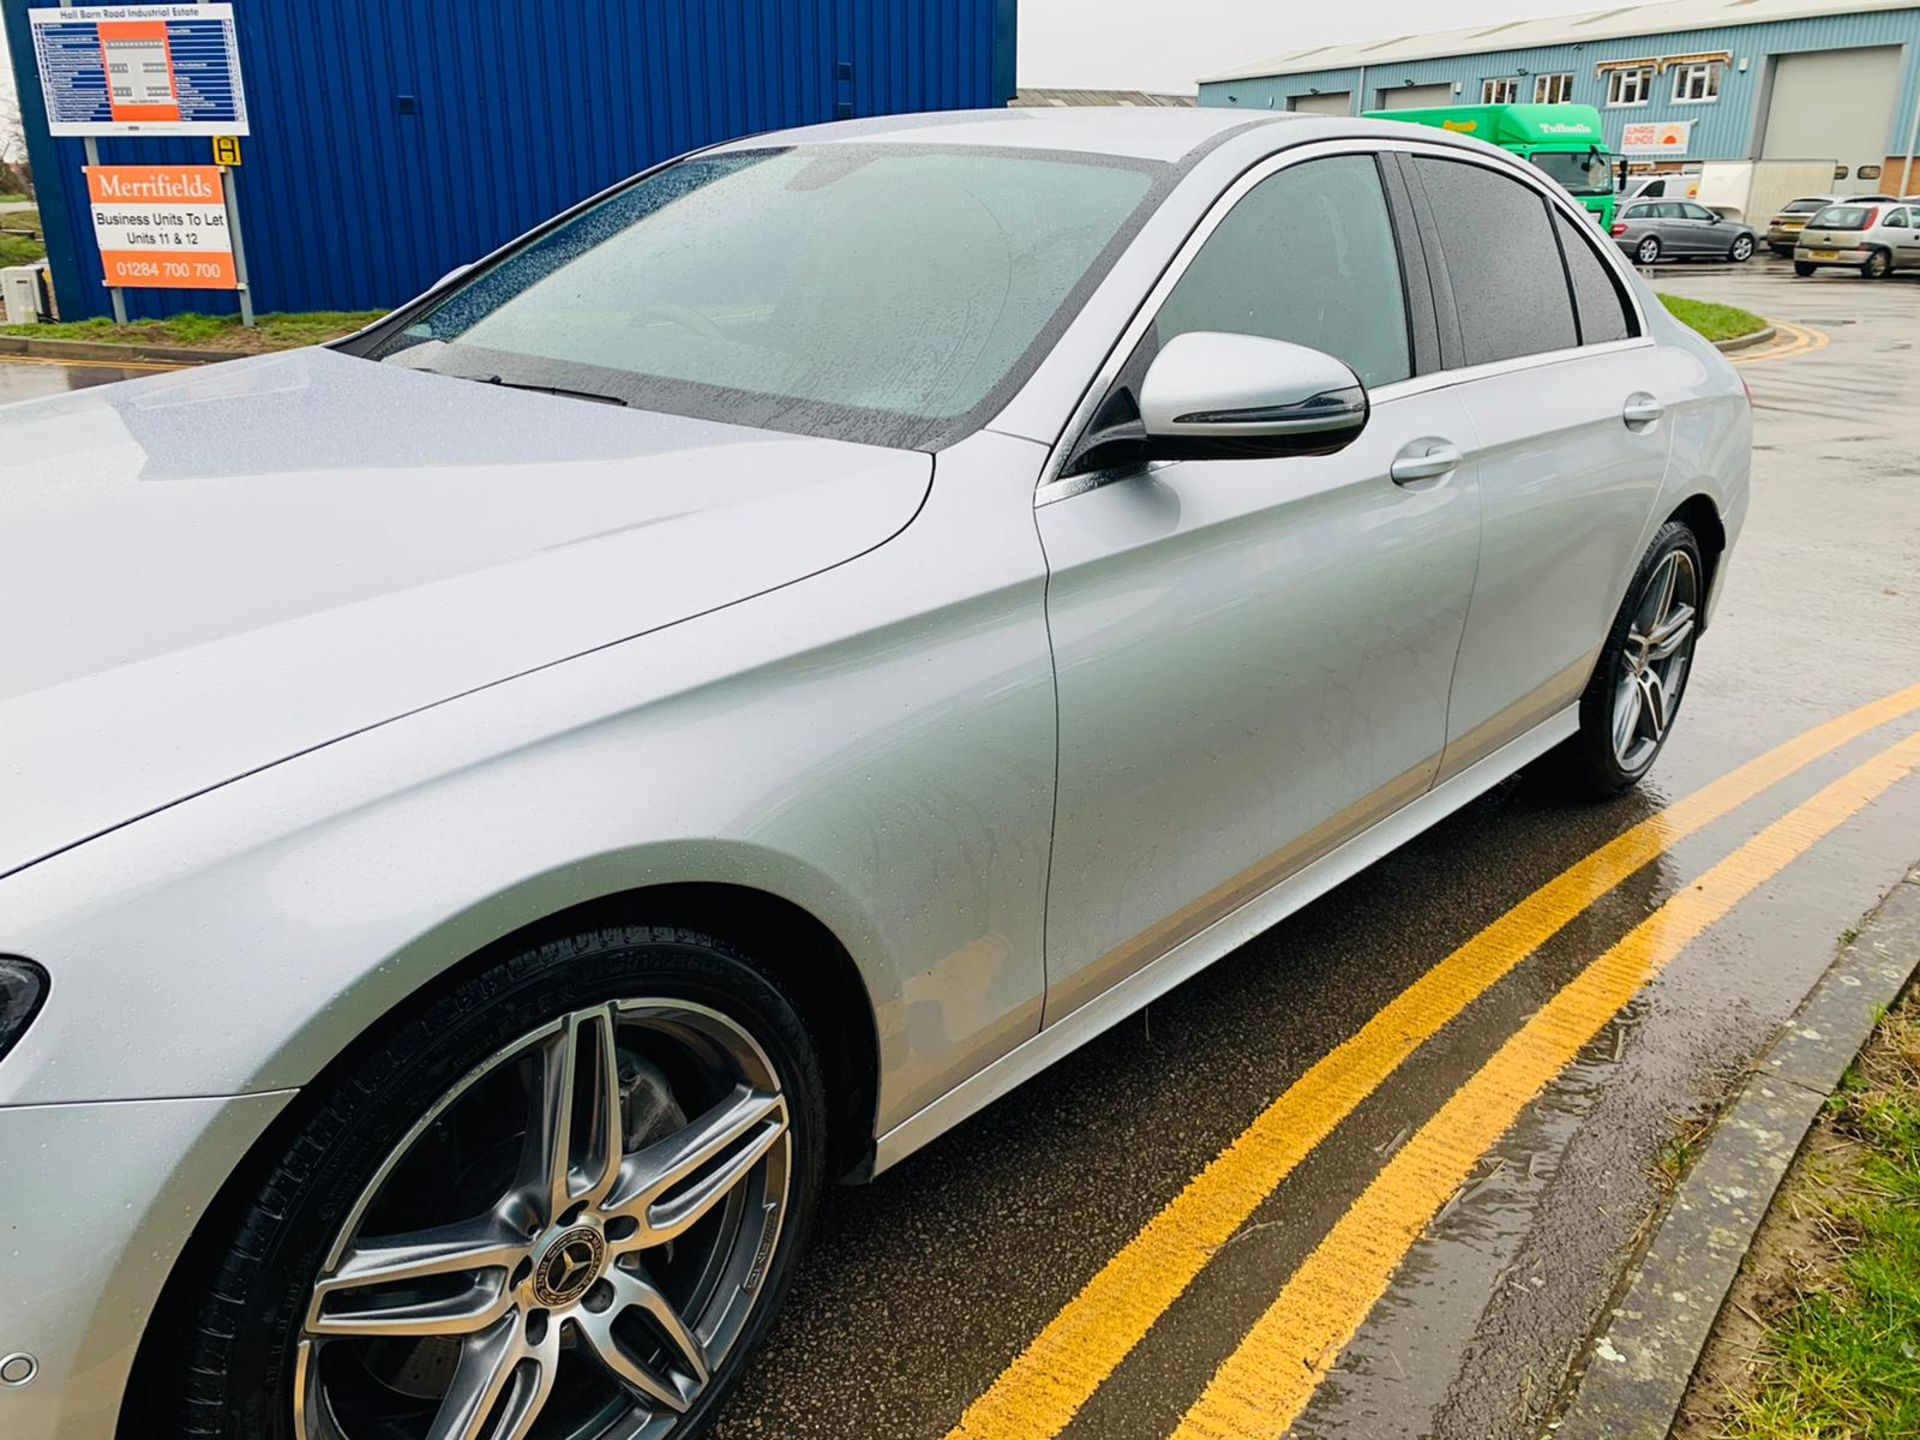 (Reserve Met)Mercedes E220d AMG Line Auto 9G Tronic - 2019 Reg - Reversing Cam - 1 Owner From New - Image 6 of 30